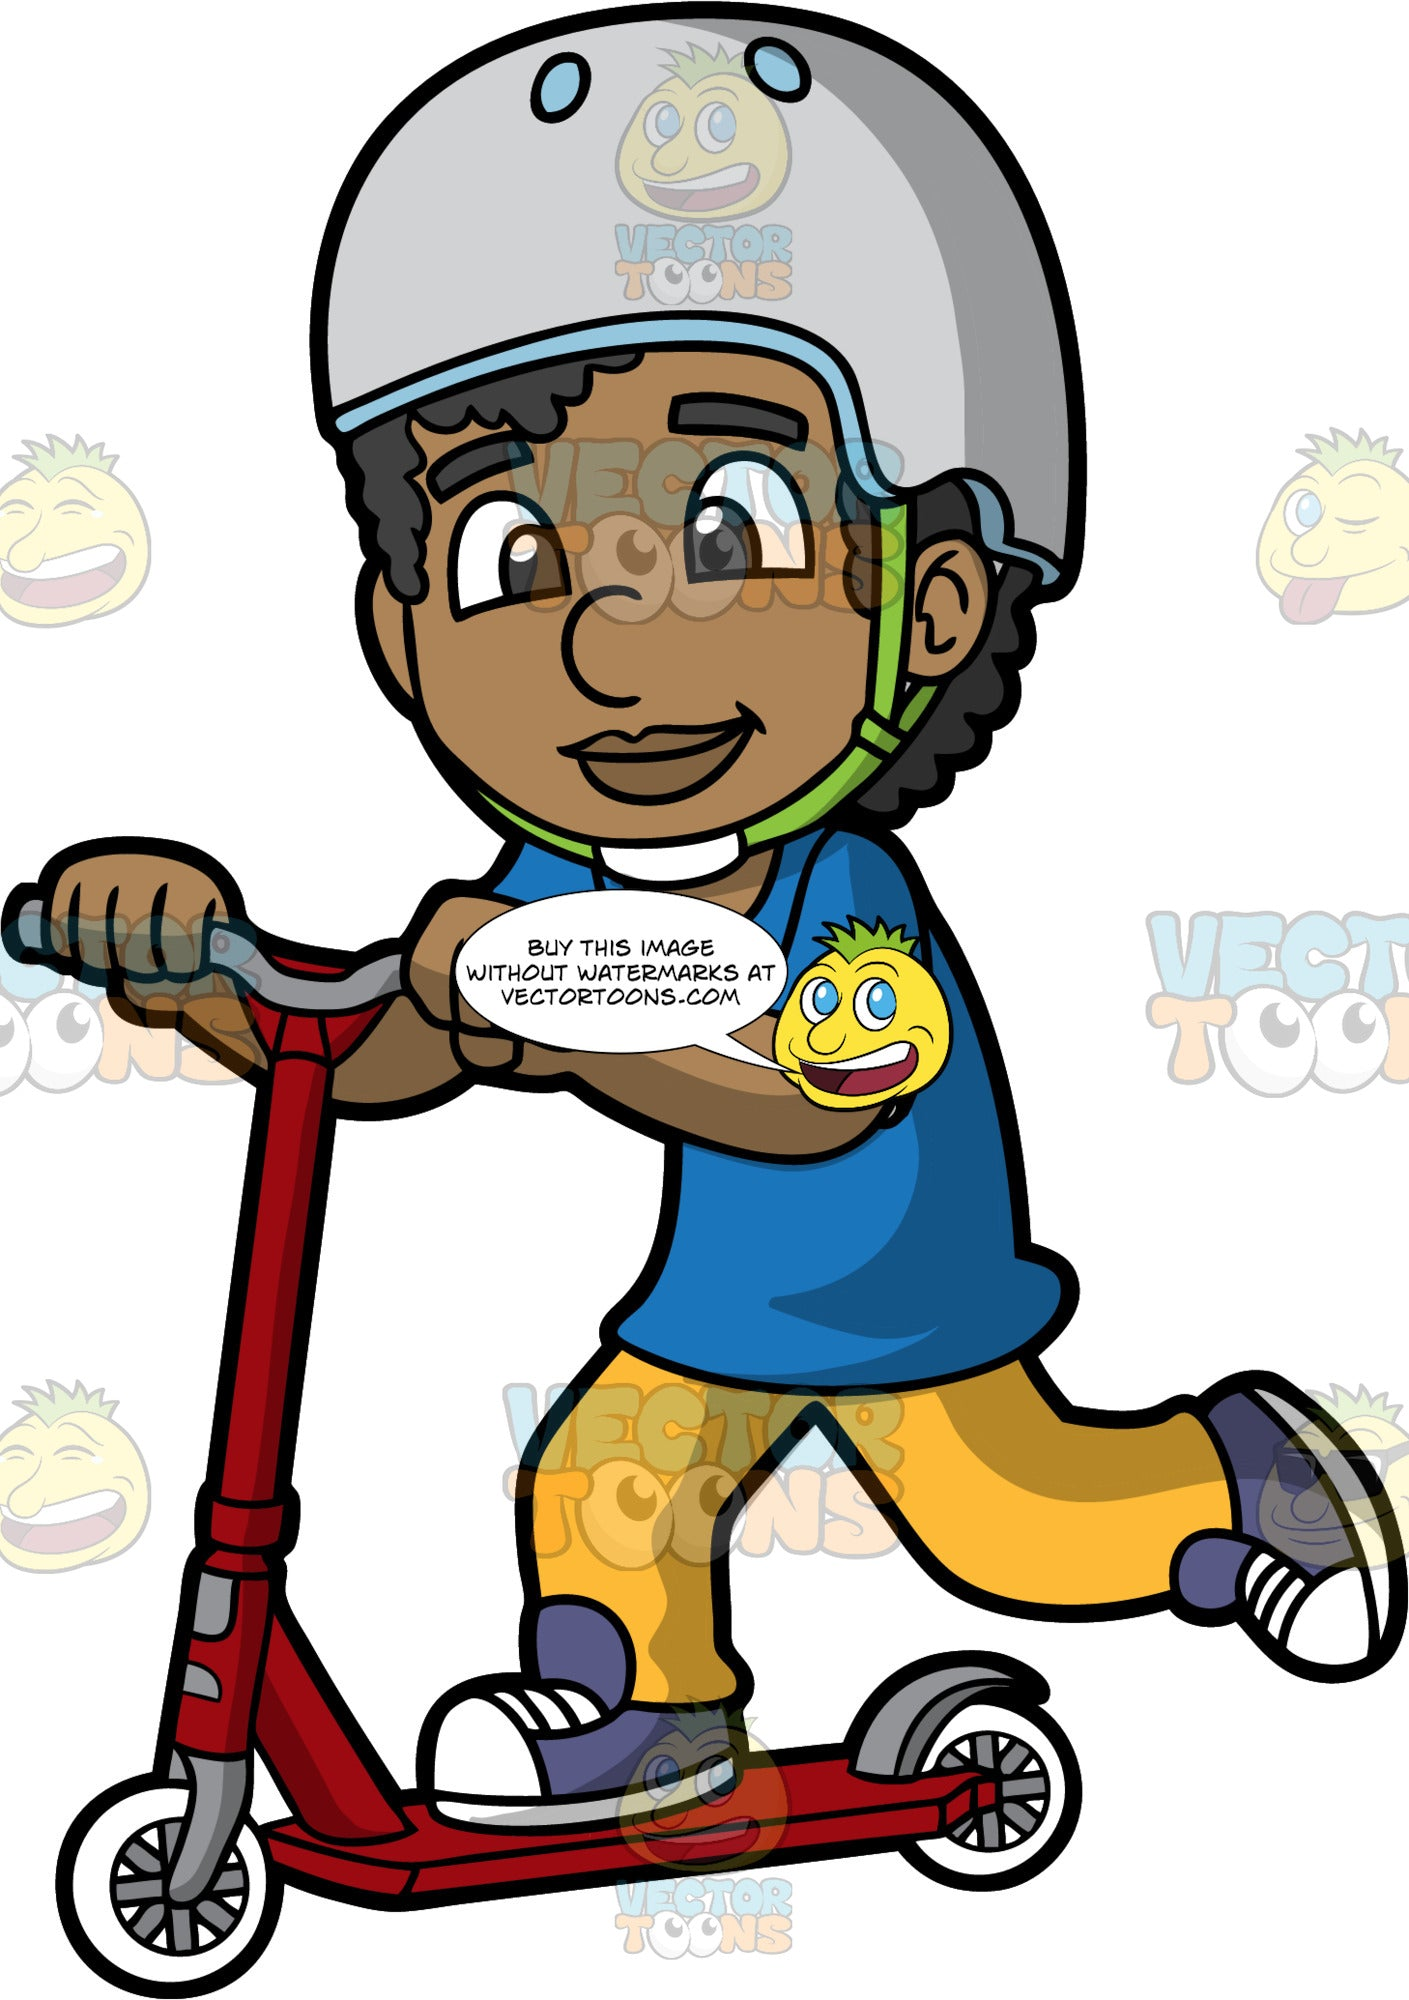 A Black Boy Riding And Moving A Scooter. A black boy with curly hair, wearing a gray with light blue helmet and a green chin strap, blue shirt, yellow pants, purple with white shoes, smiles while riding a red with gray and white scooter